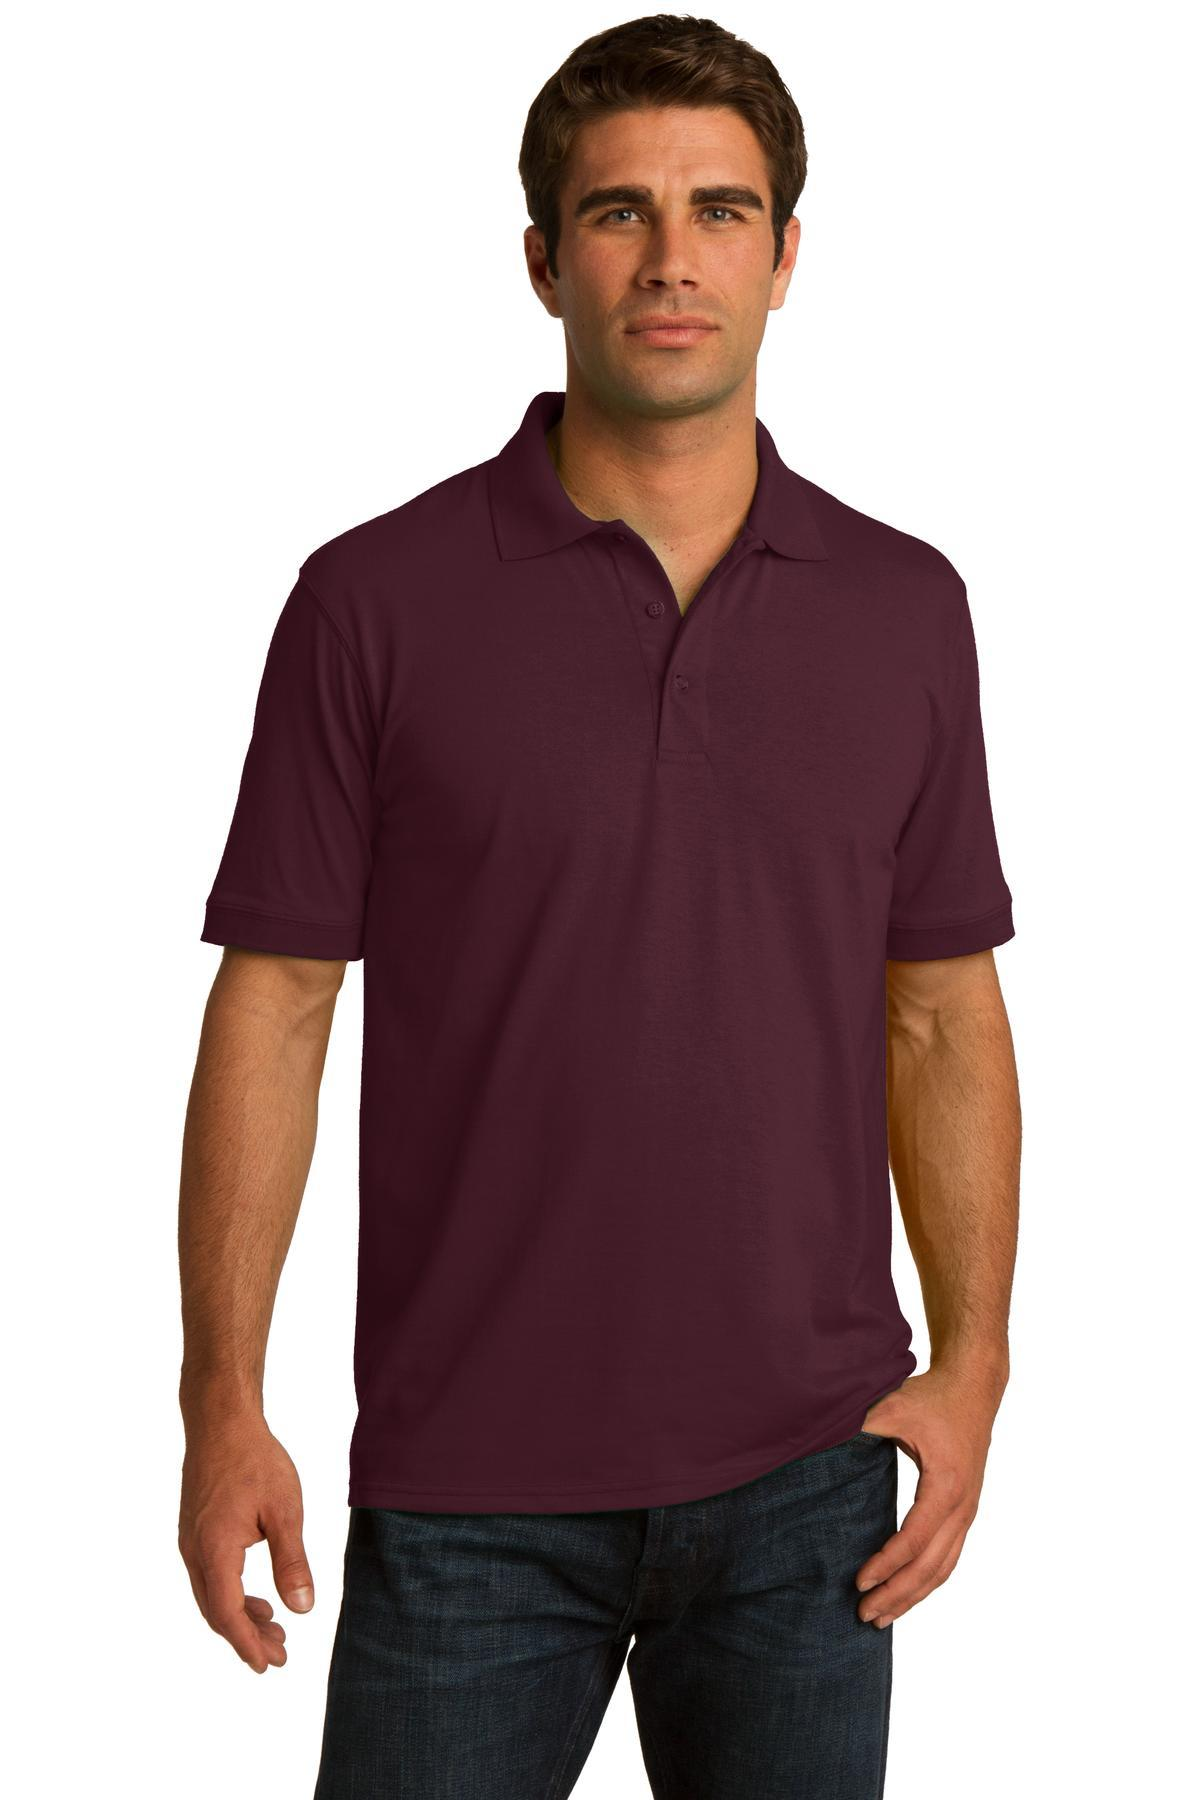 Athletic Maroon - Port & Company KP55T